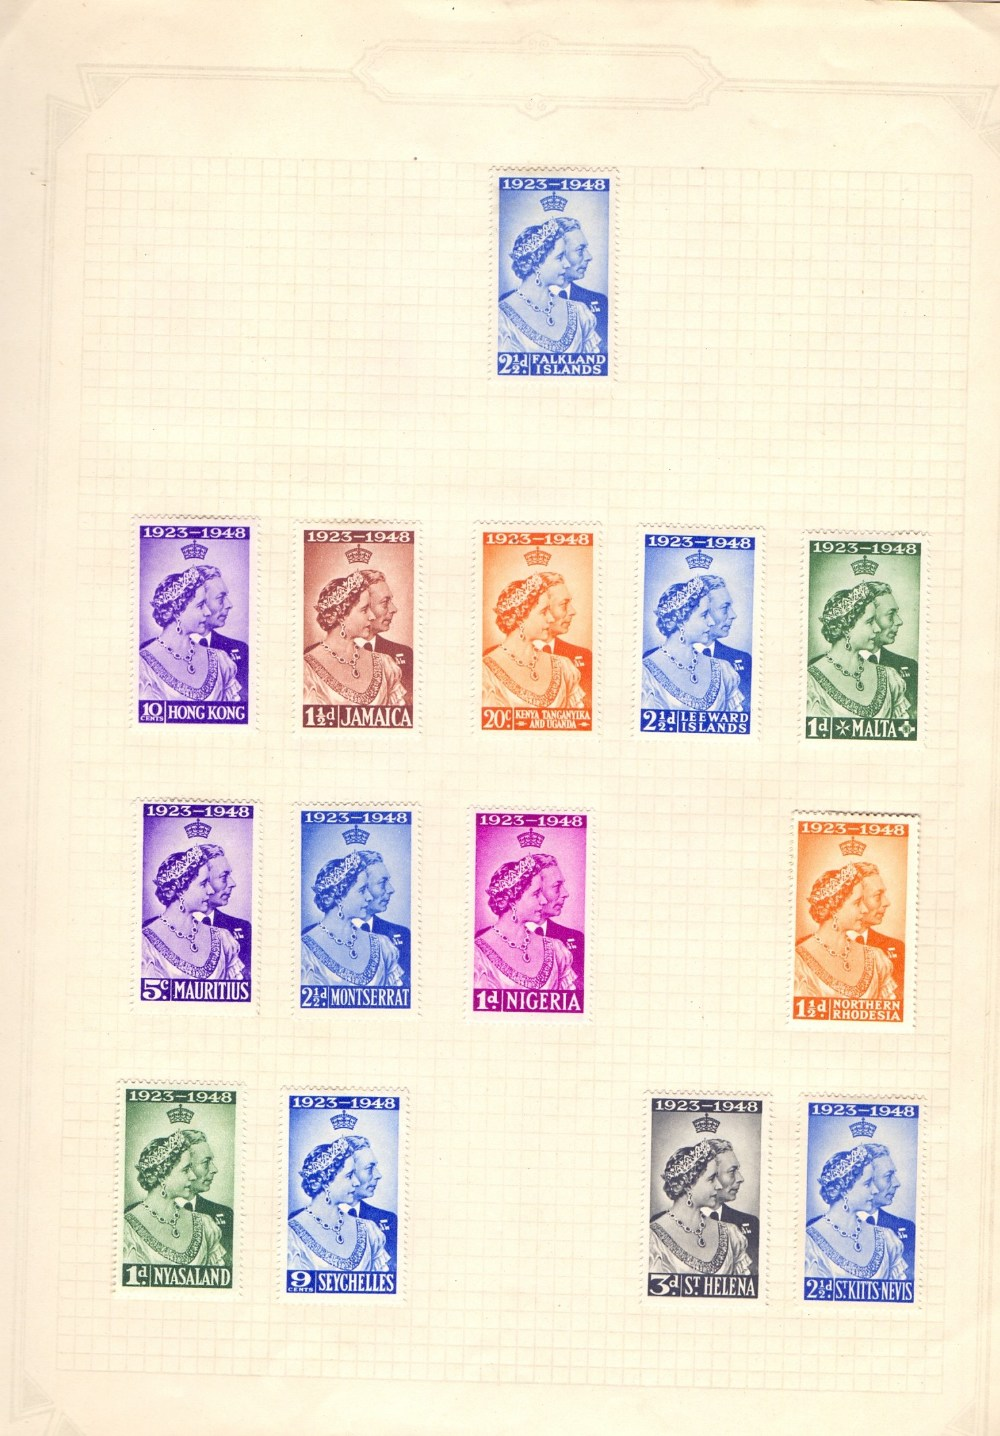 Lot 49 - STAMPS : Glory box of albums stamps and covers, including GB commems from 1953 mint,